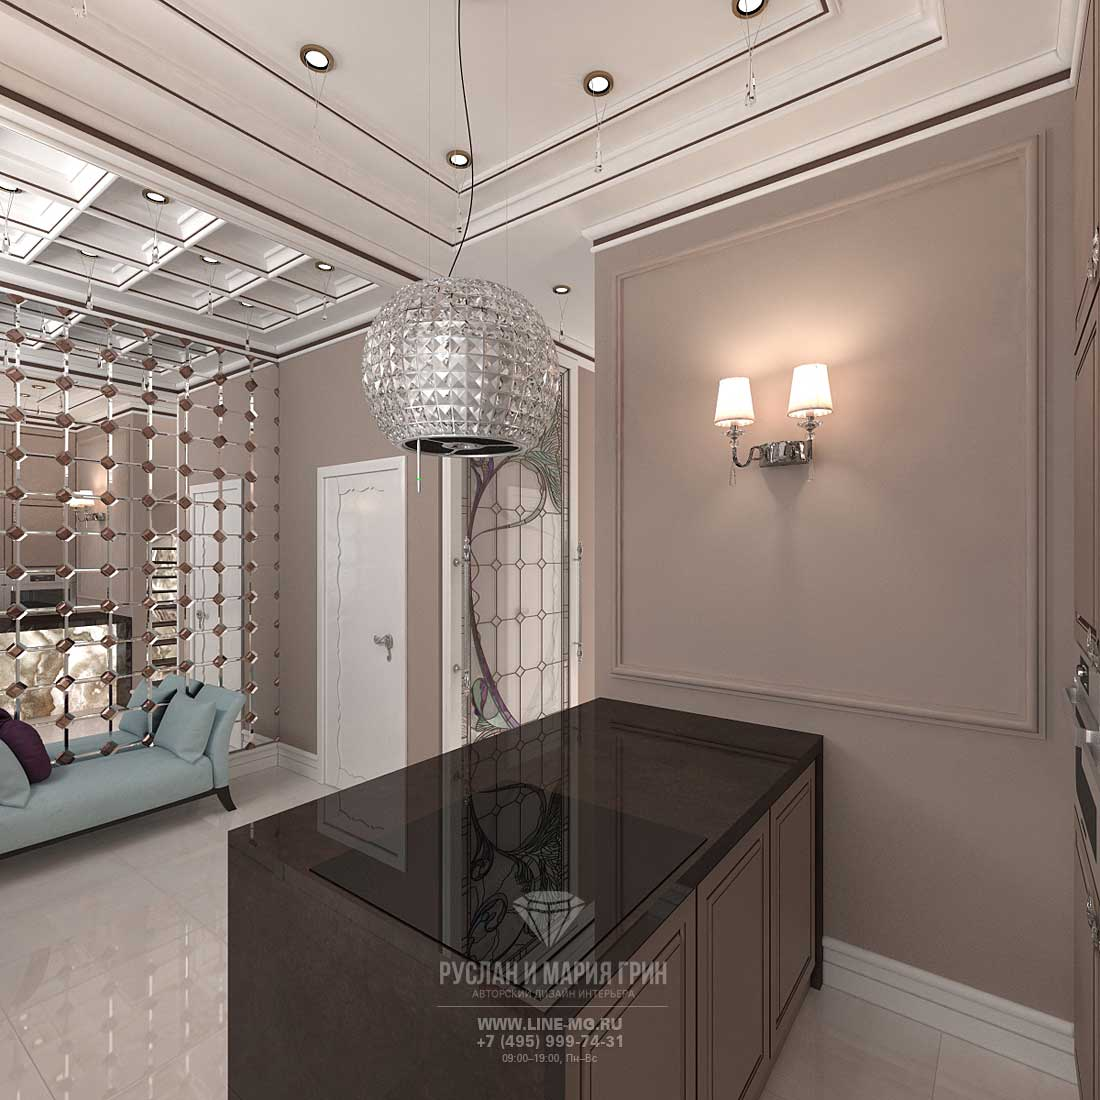 The idea of kitchen-hallway design in a townhouse